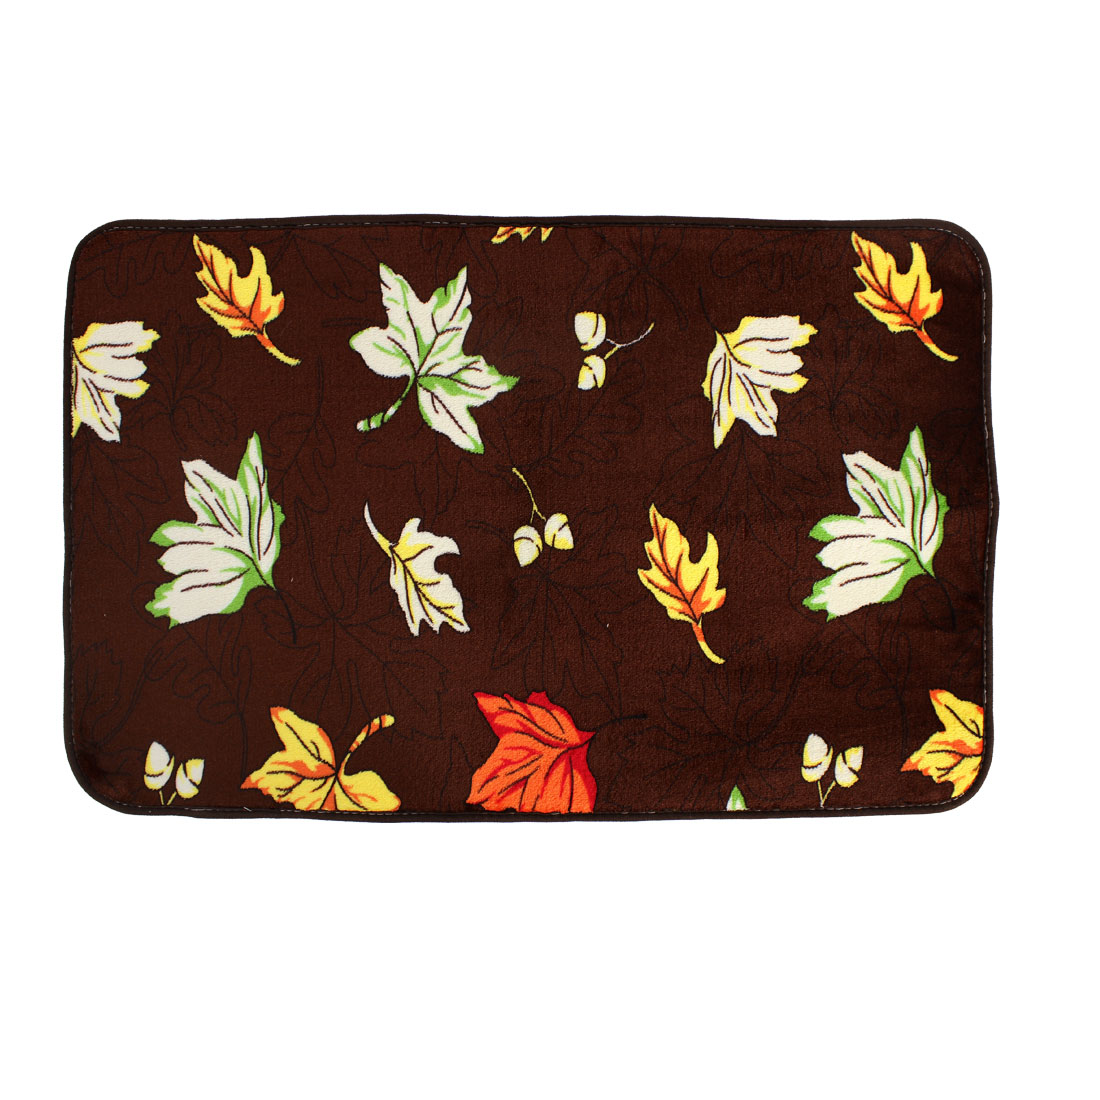 Maple Leaf Pattern Floor Mats Area Rugs Carpets Footcloths 50 x 80cm